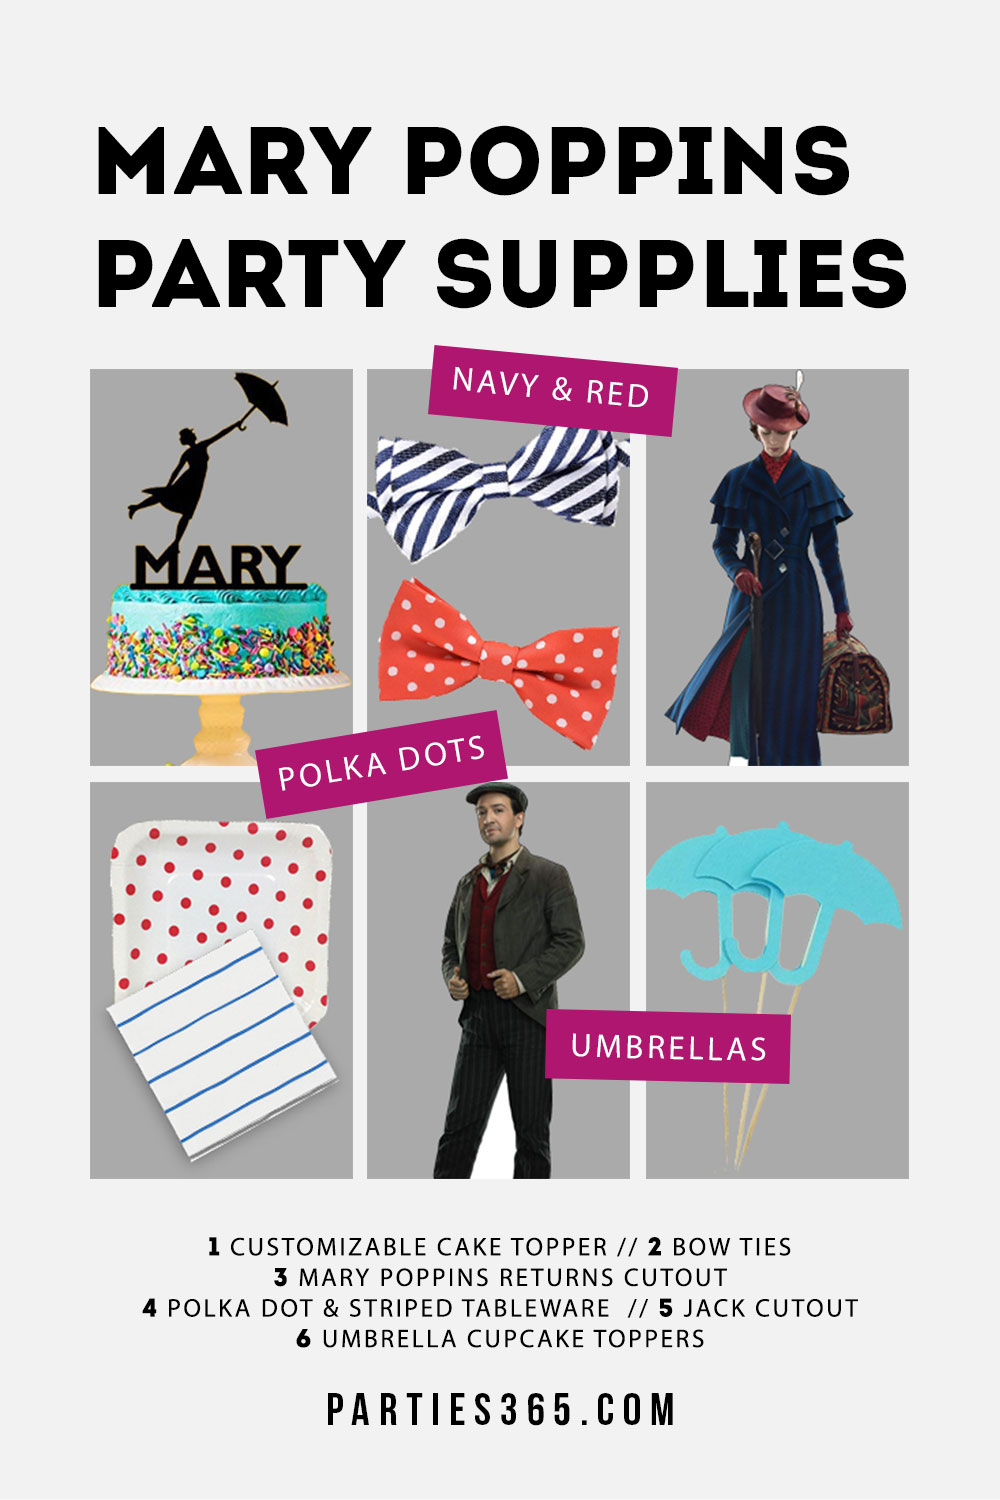 Mary Poppins Party supplies and ideas